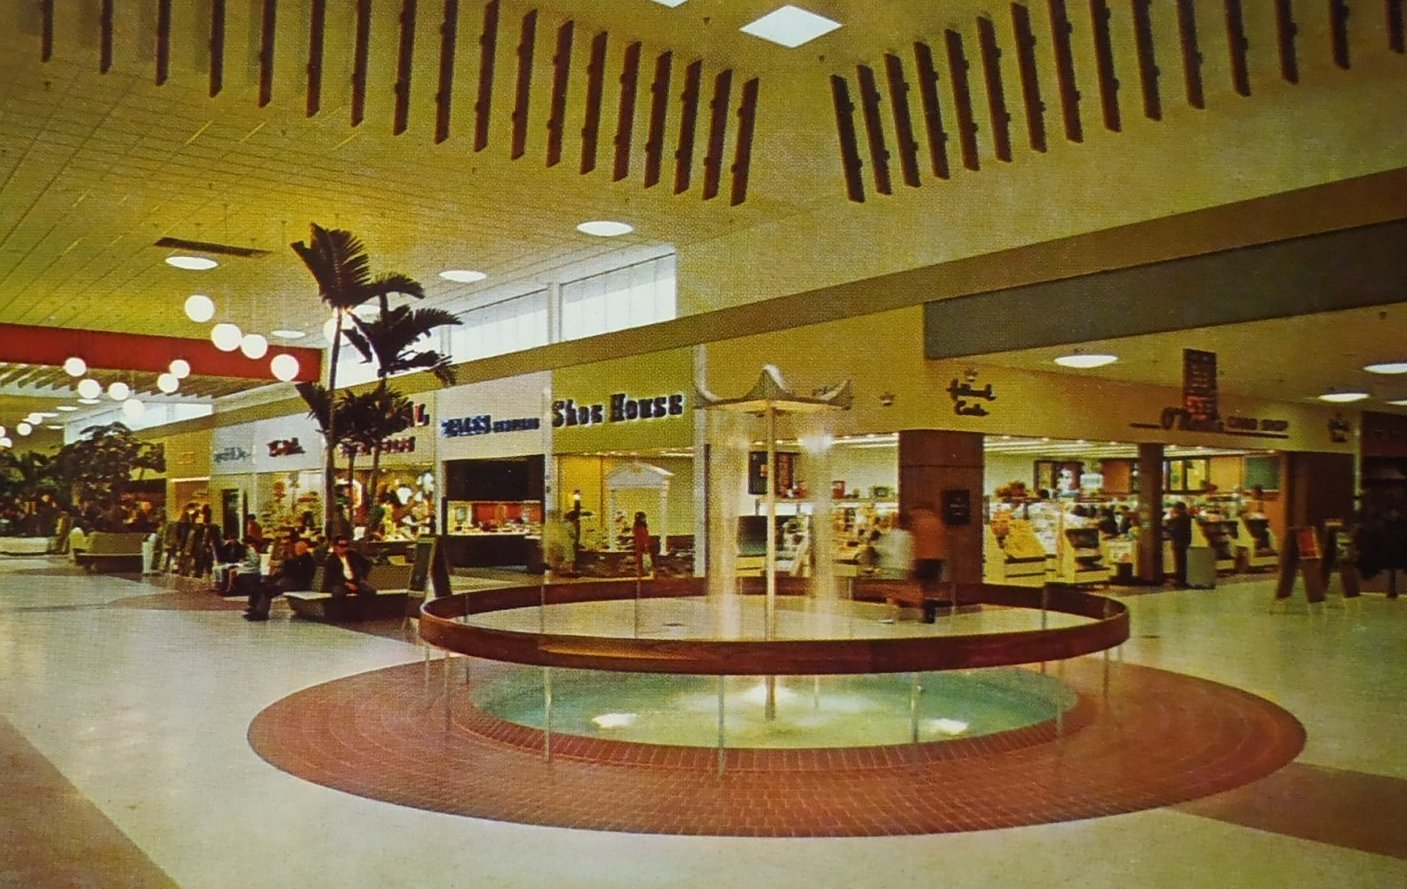 MALL HALL OF FAME: July 2007